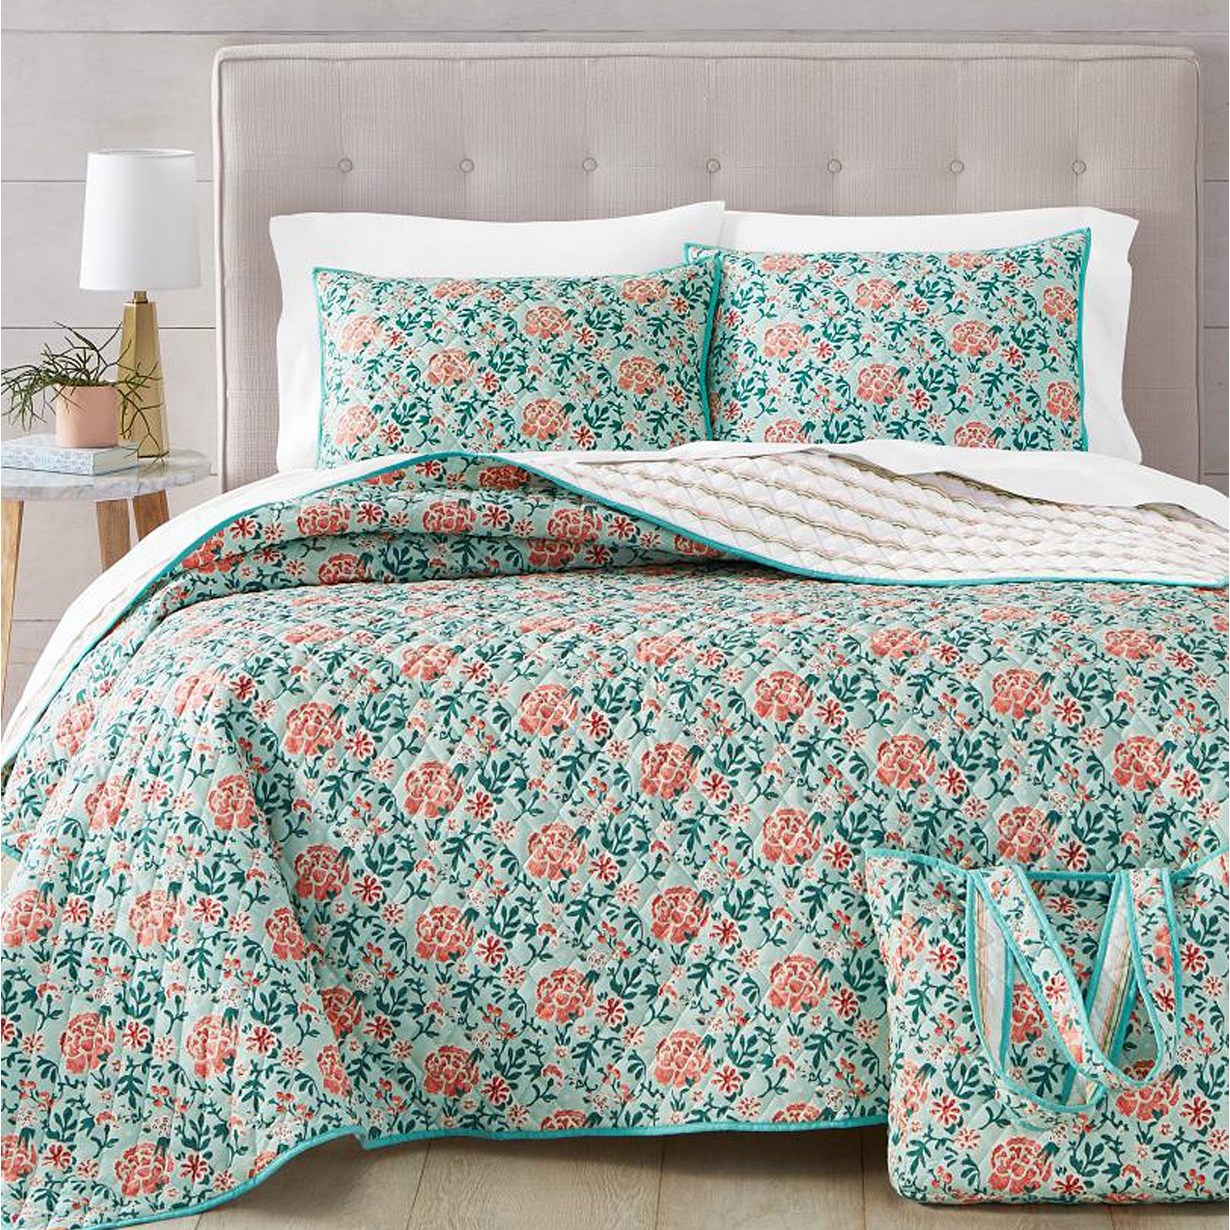 floral quilt set from macys